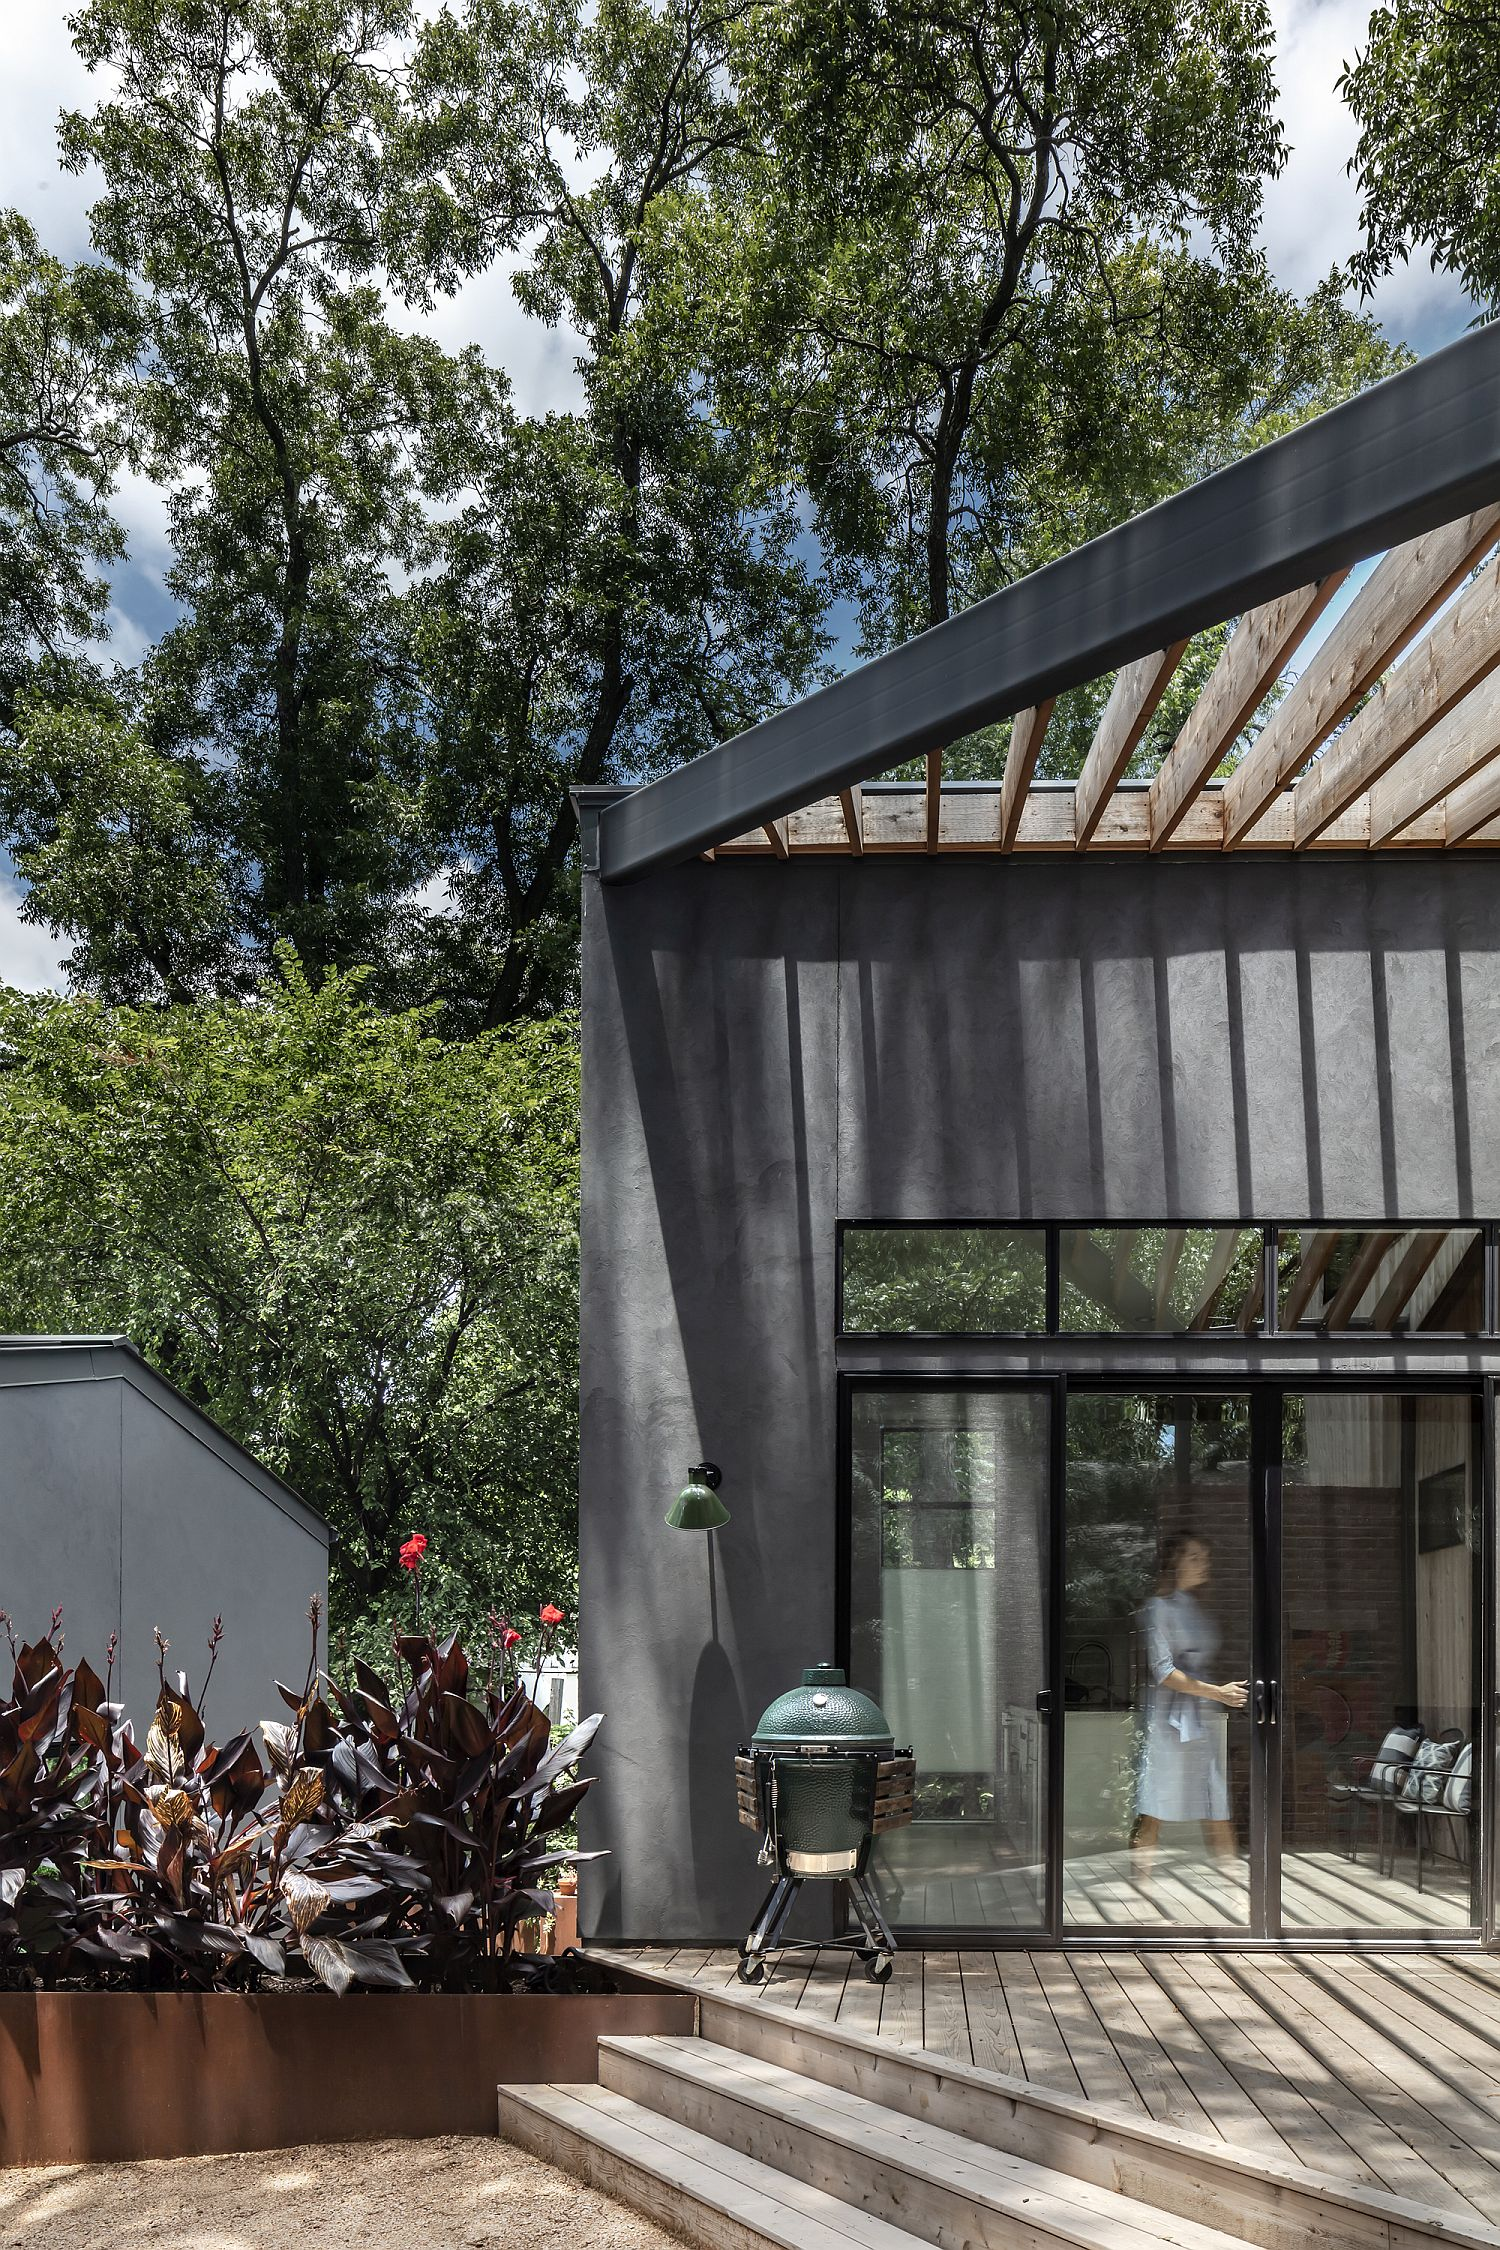 Dark gray stucco gives modernity to the exterior of the house